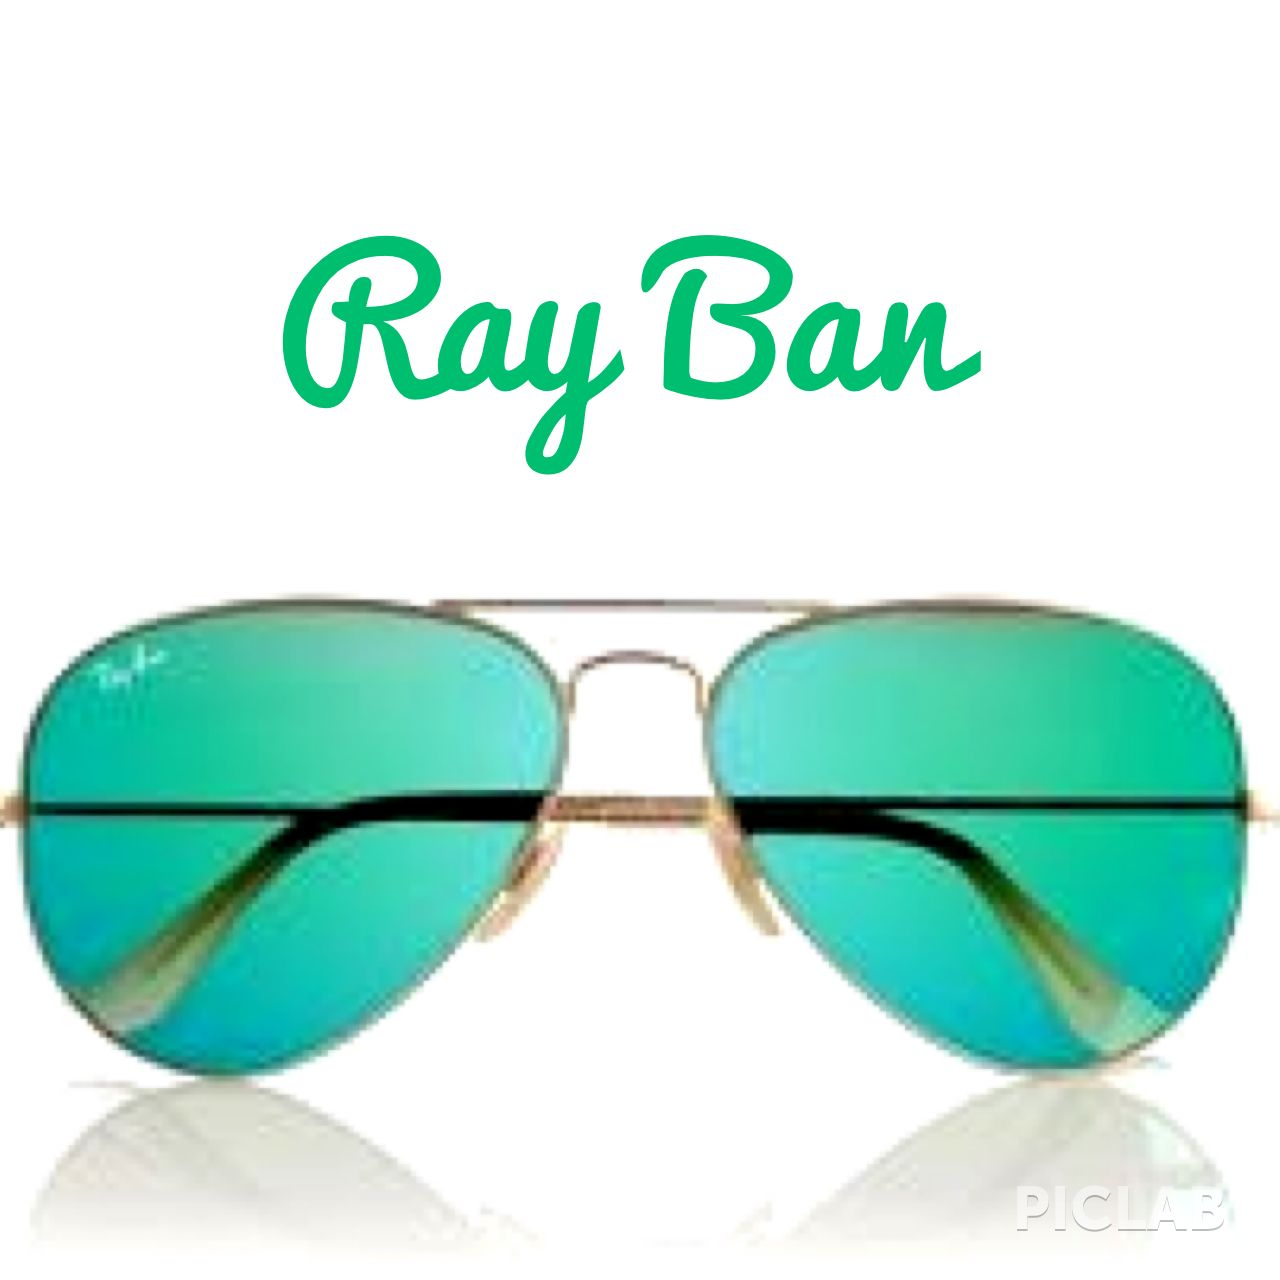 9f873e6d1 Ray Ban | Teal (My Fav Color) | Sunglasses, Net a porter, How to wear